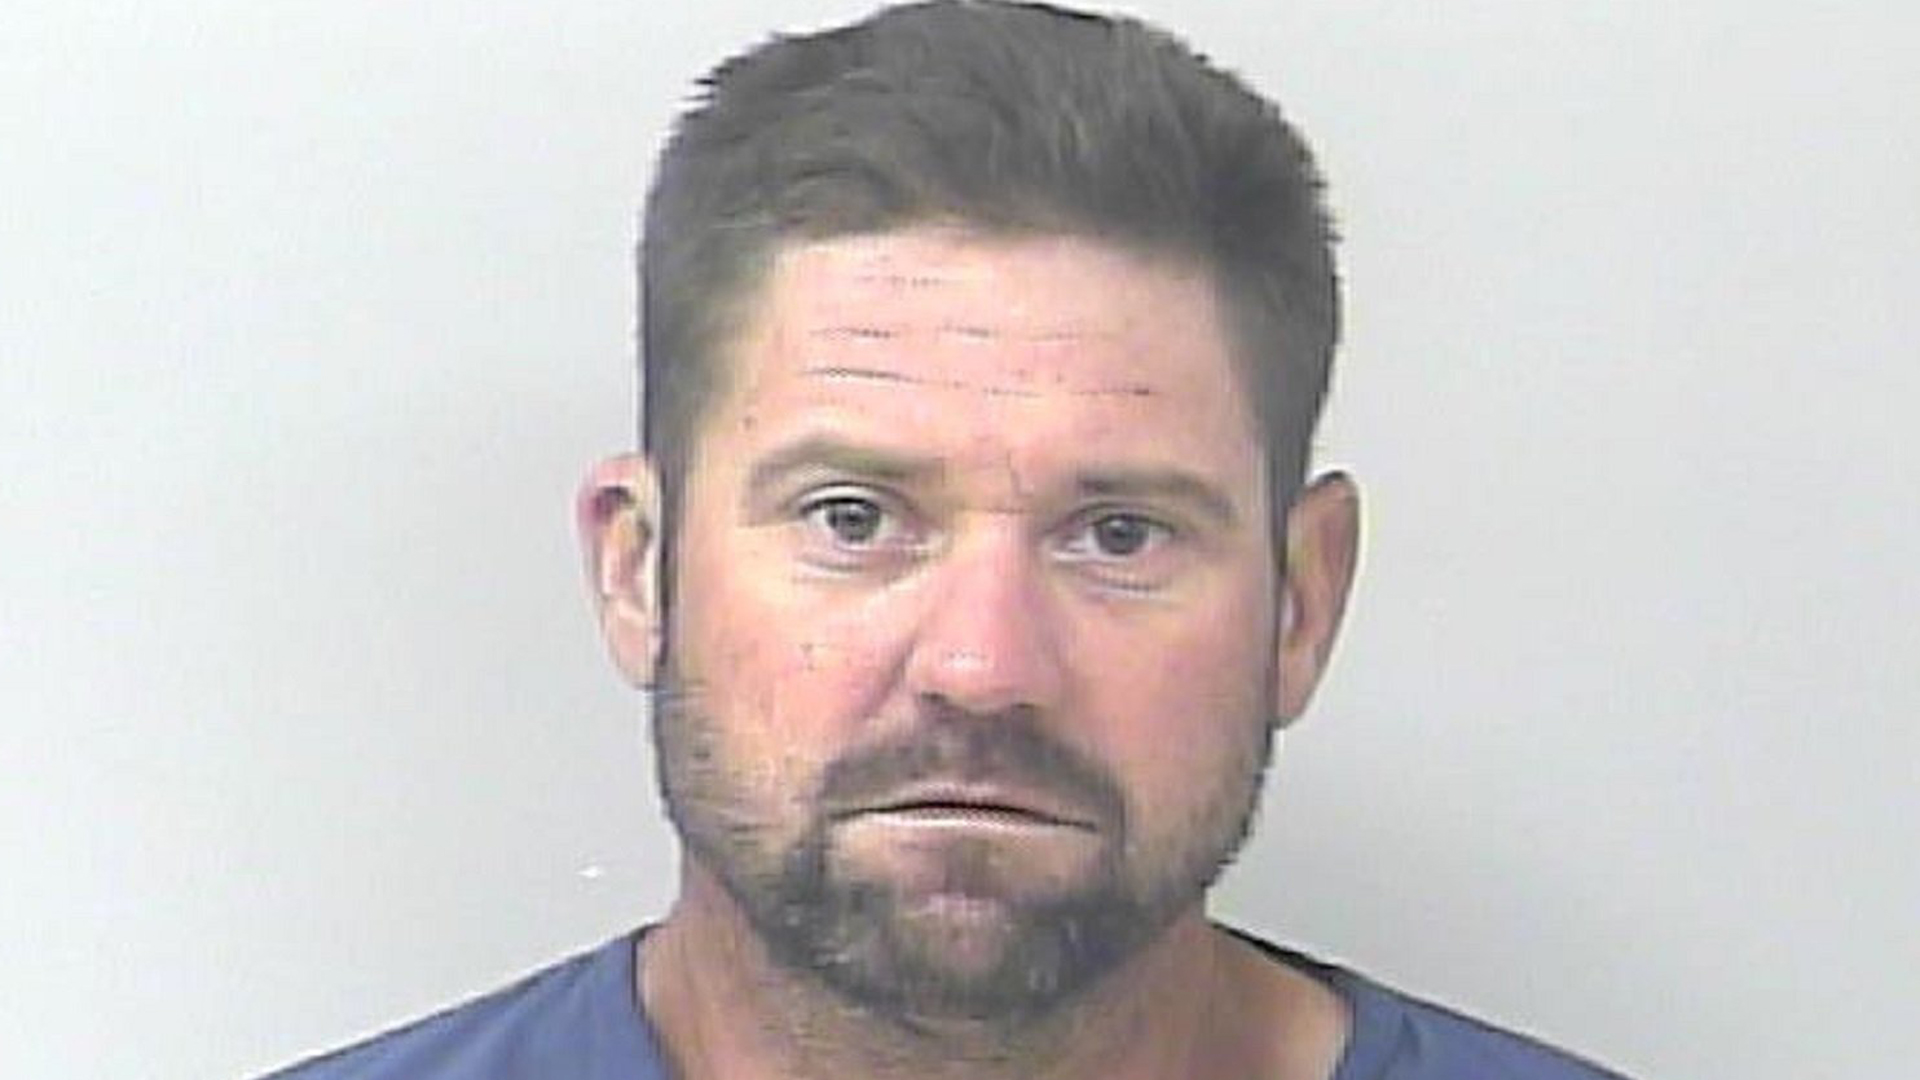 Casey Michael Lewis appears in a booking photo CNN obtained from the St. Lucie County Sheriff's Office in April 2019.